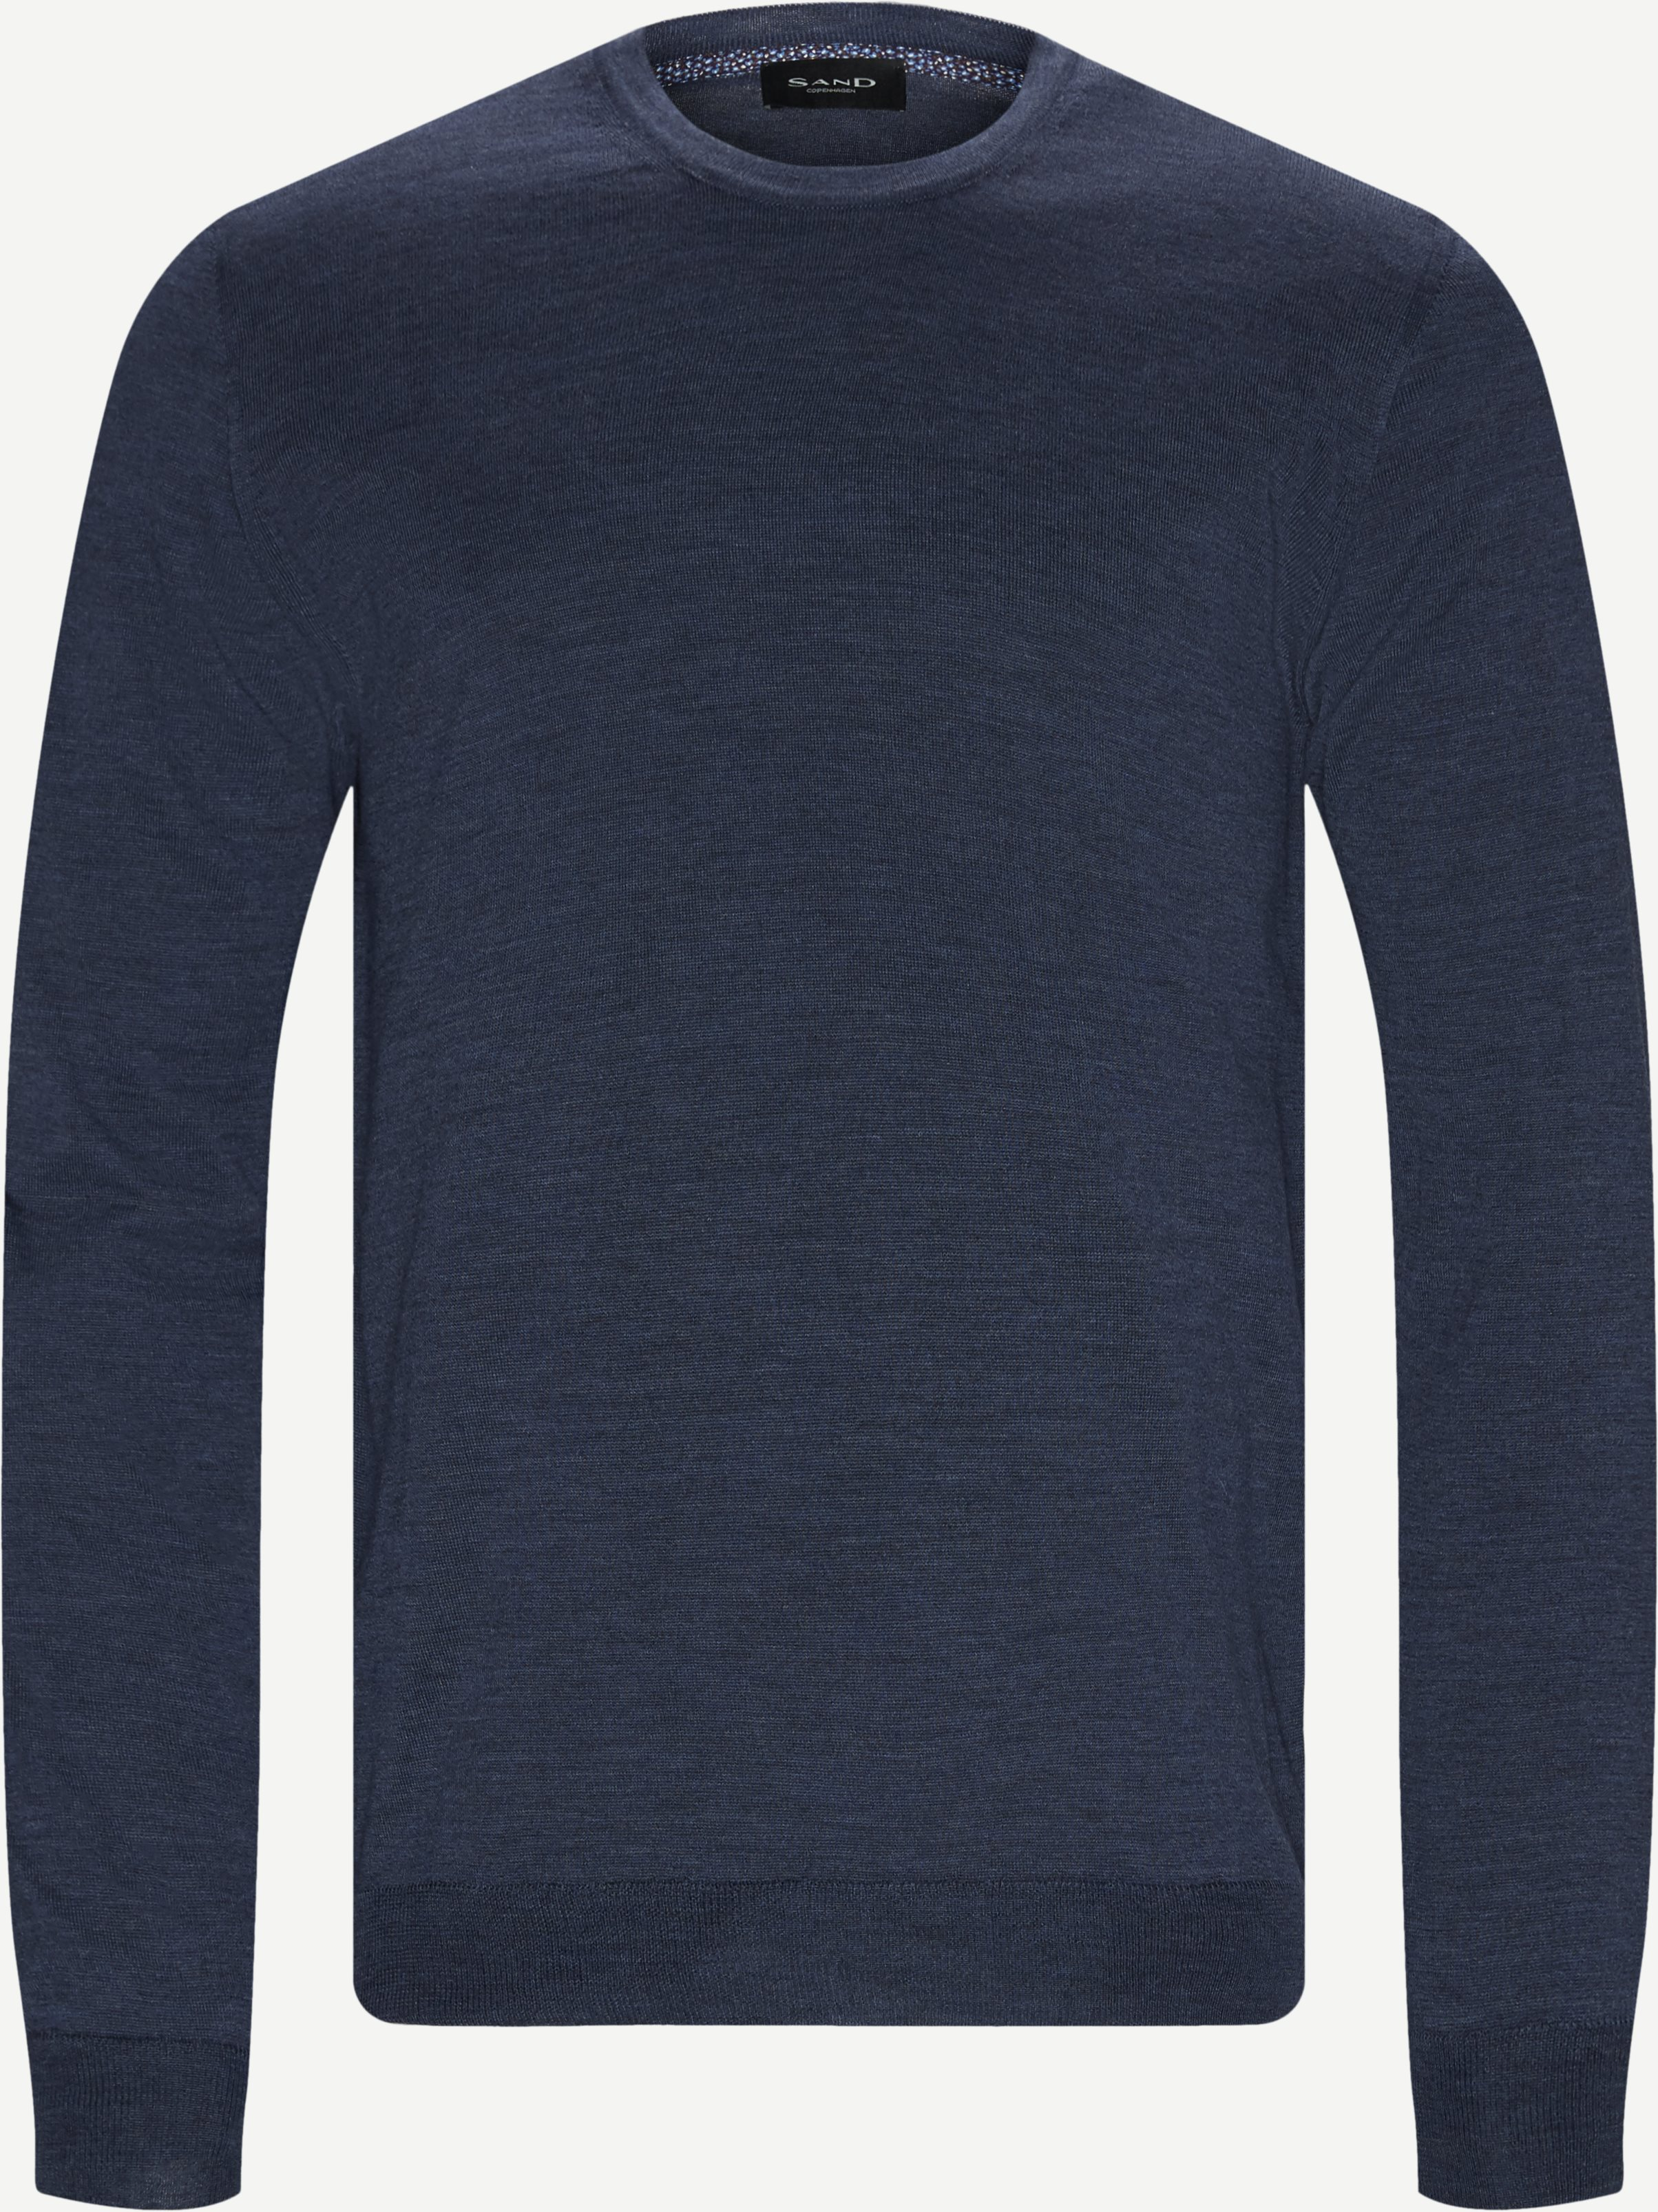 Knitwear - Regular - Denim